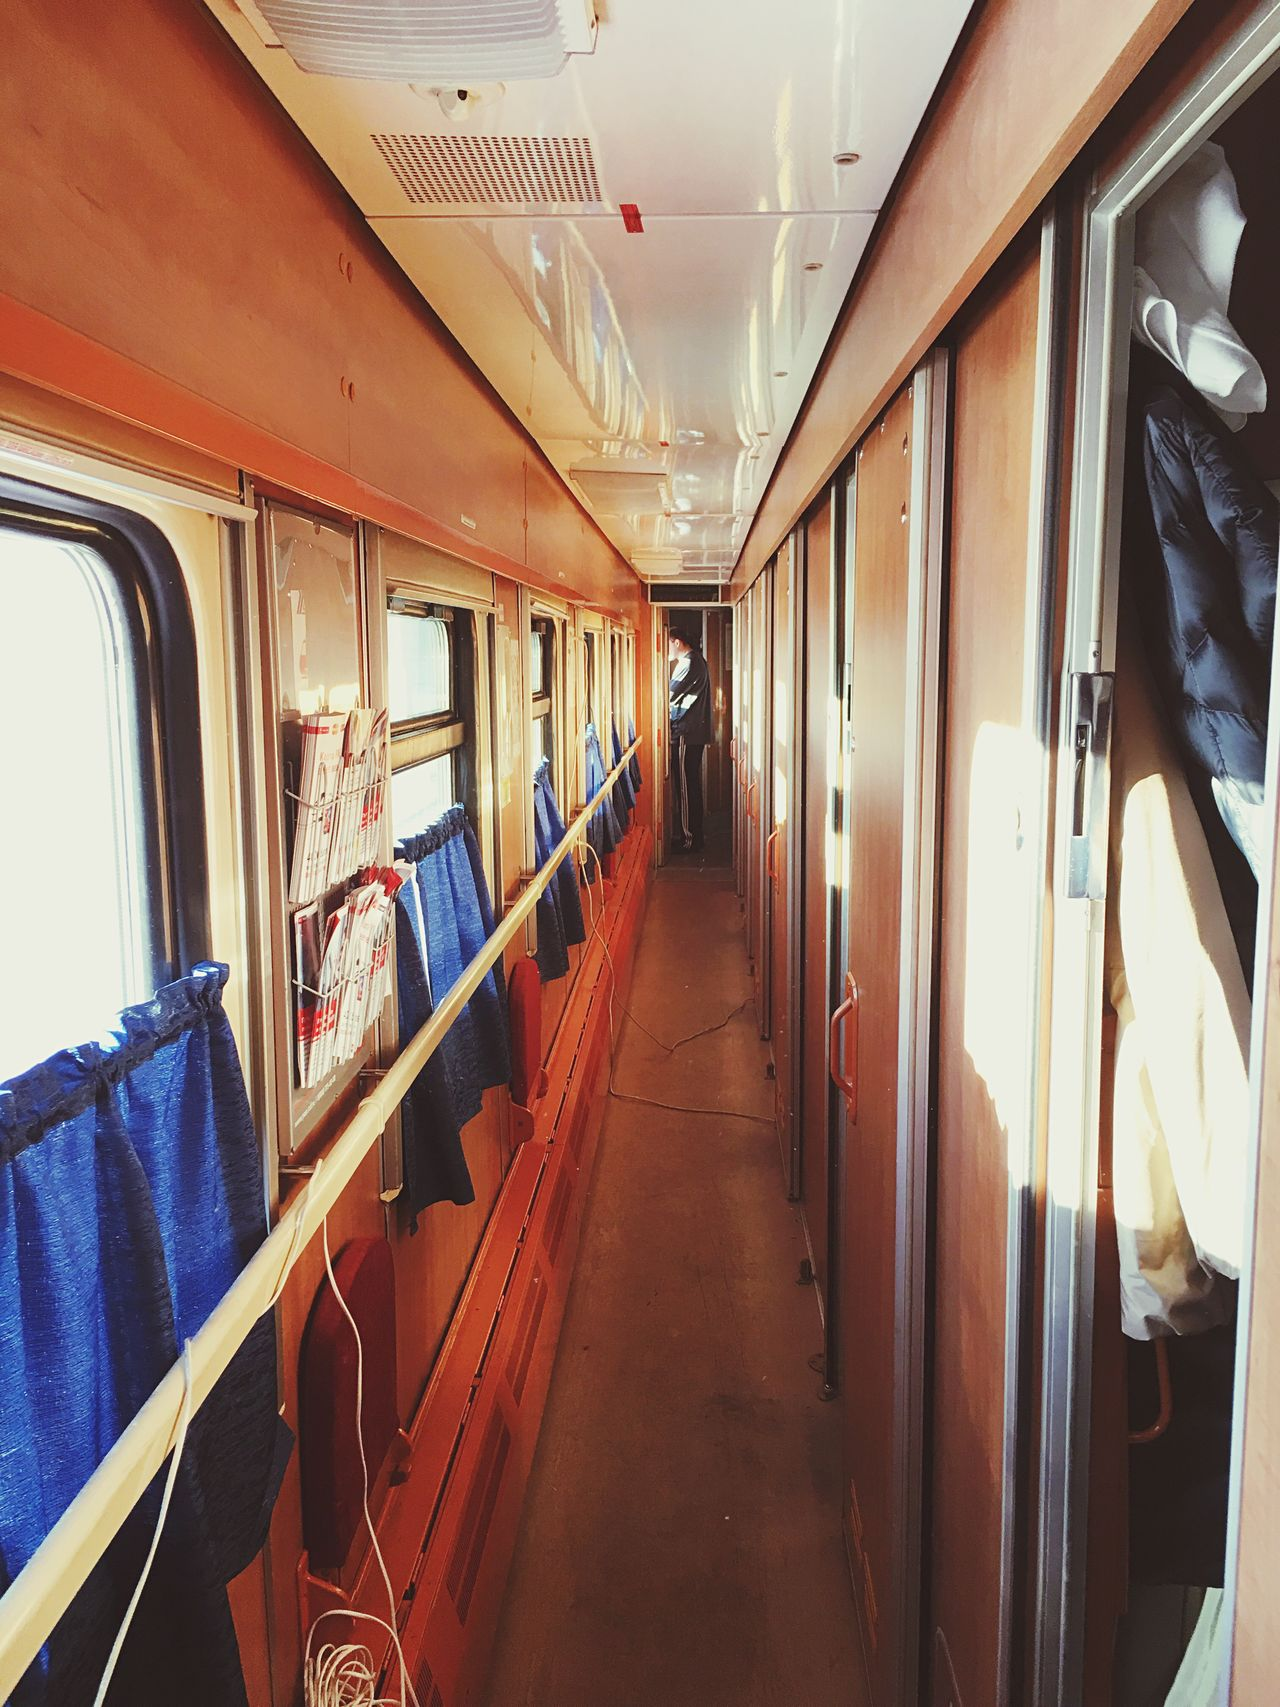 Vehicle Interior Transportation Public Transportation Mode Of Transport Vehicle Seat Window Travel Train - Vehicle Train Interior Passenger Train Empty Subway Train Commuter Train Seat Indoors  Day No People Train